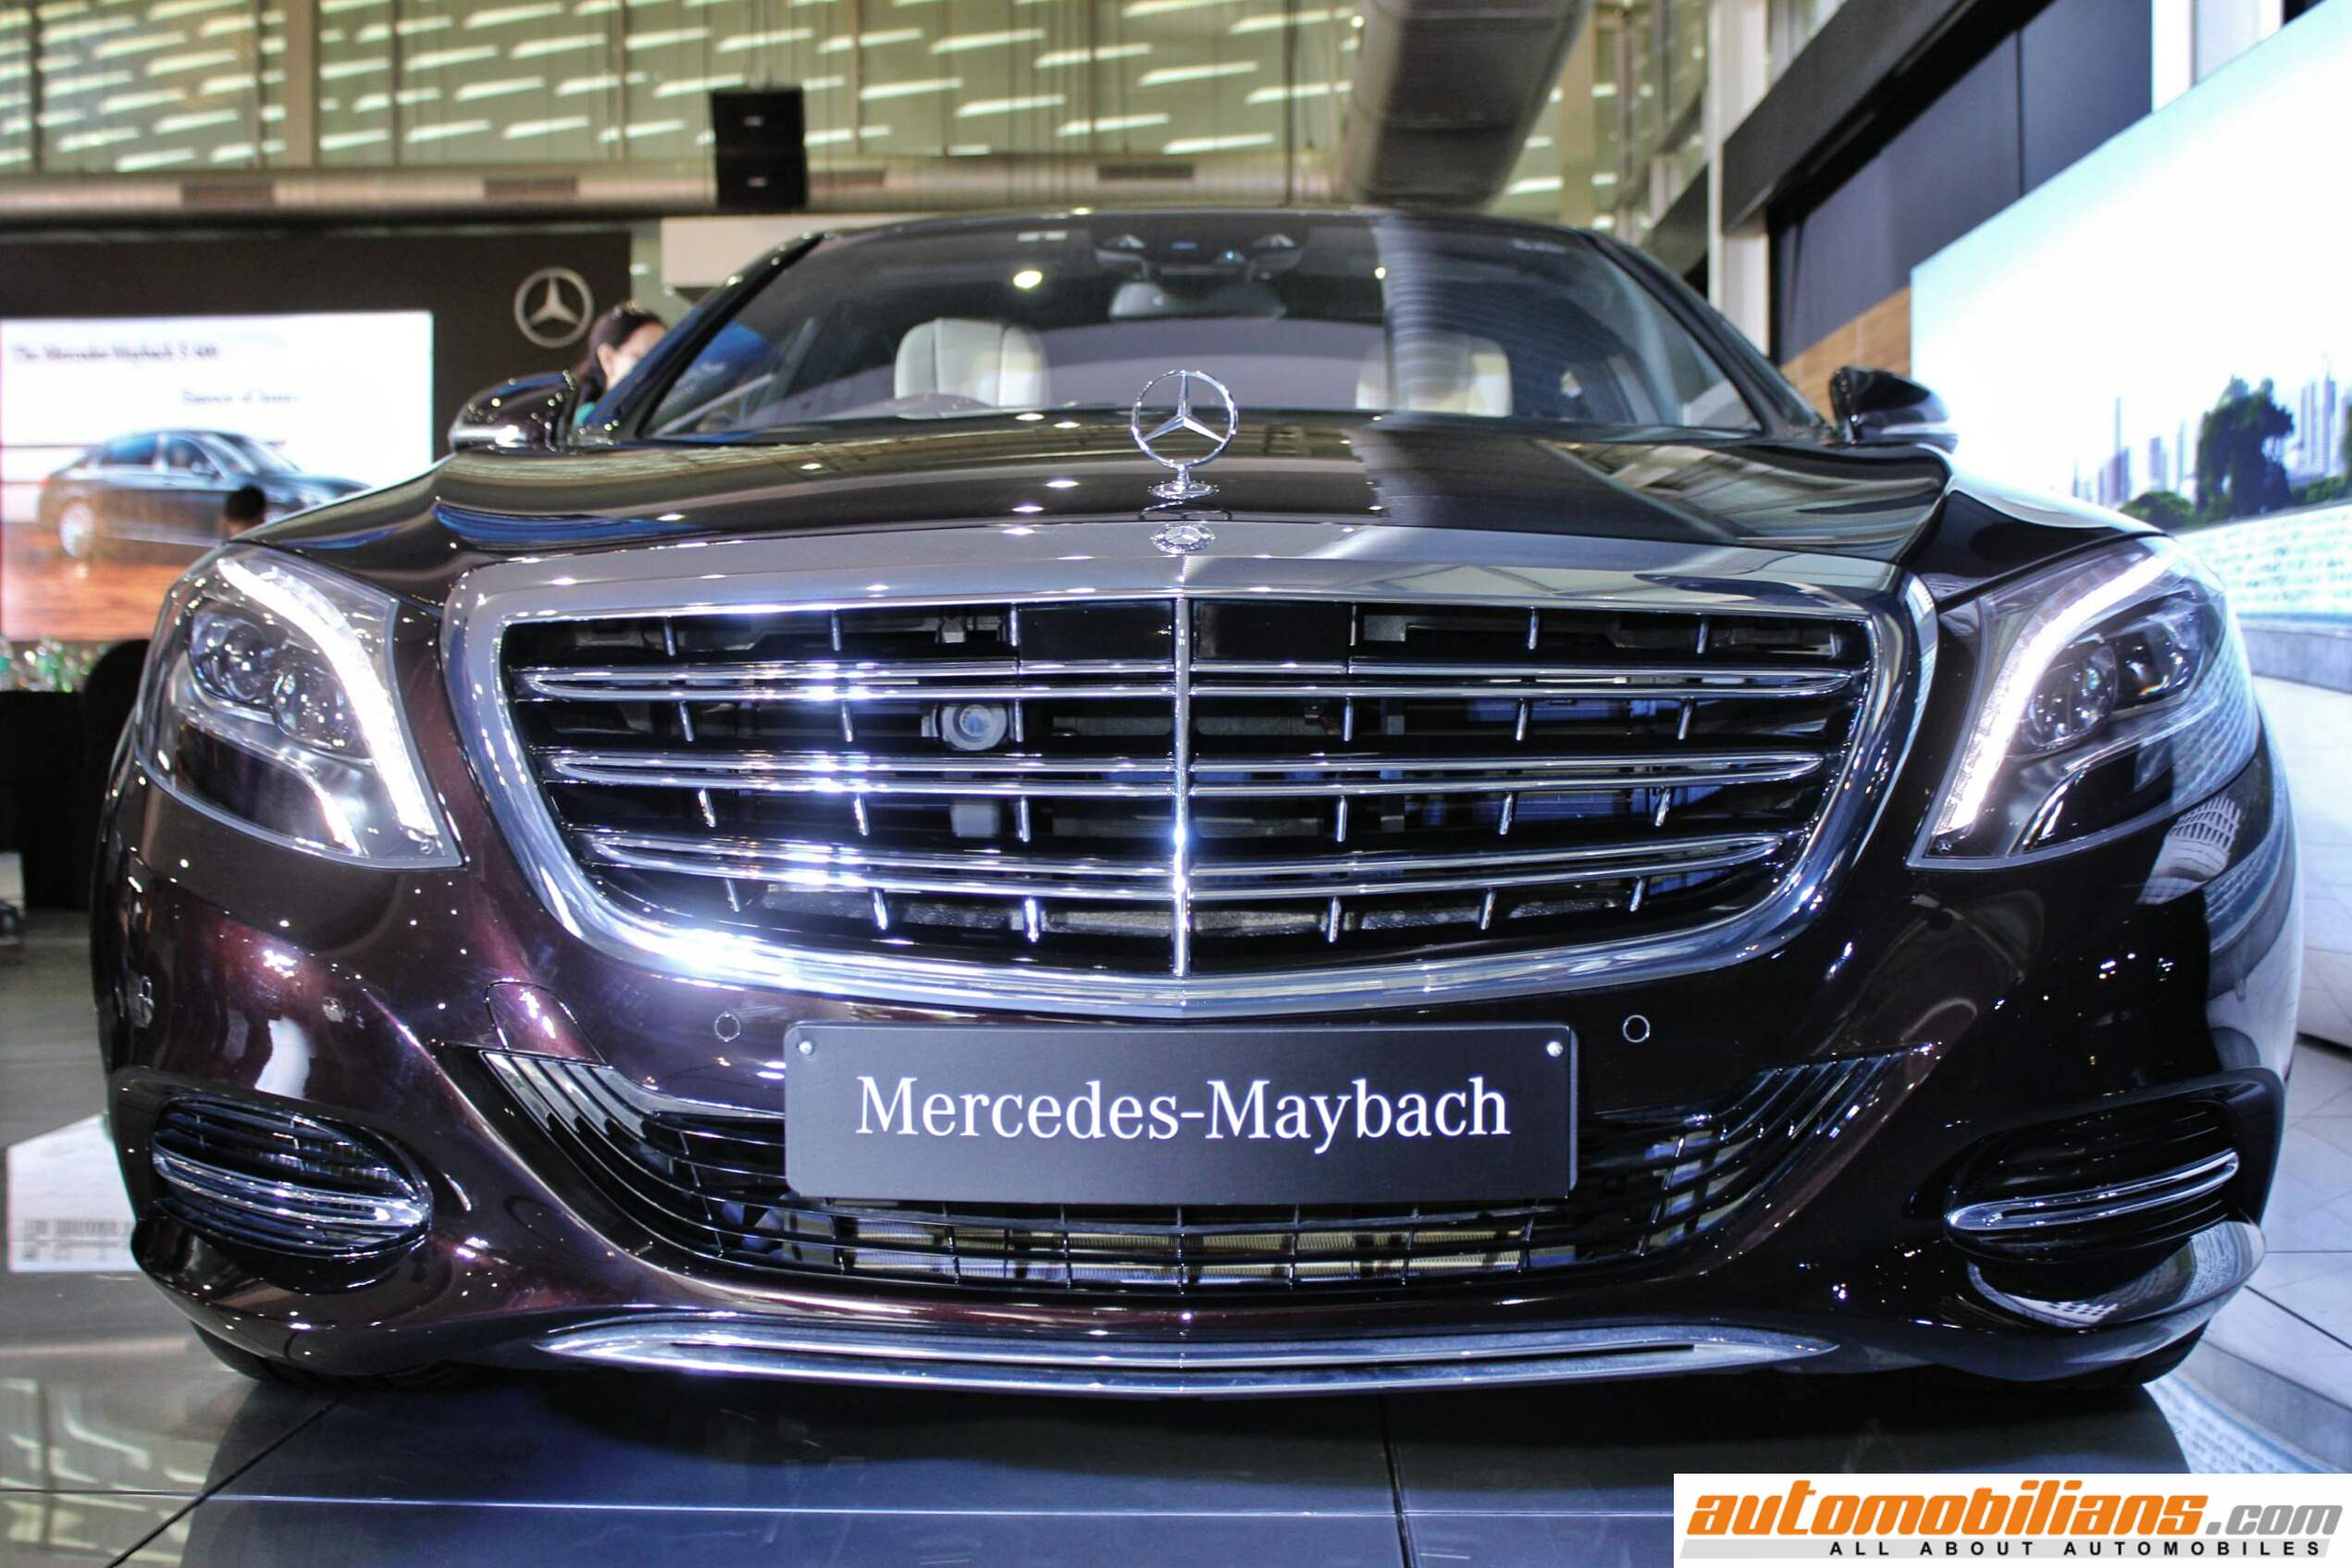 mercedes-maybach s600 launched in india at rs. 2.60 crores (ex